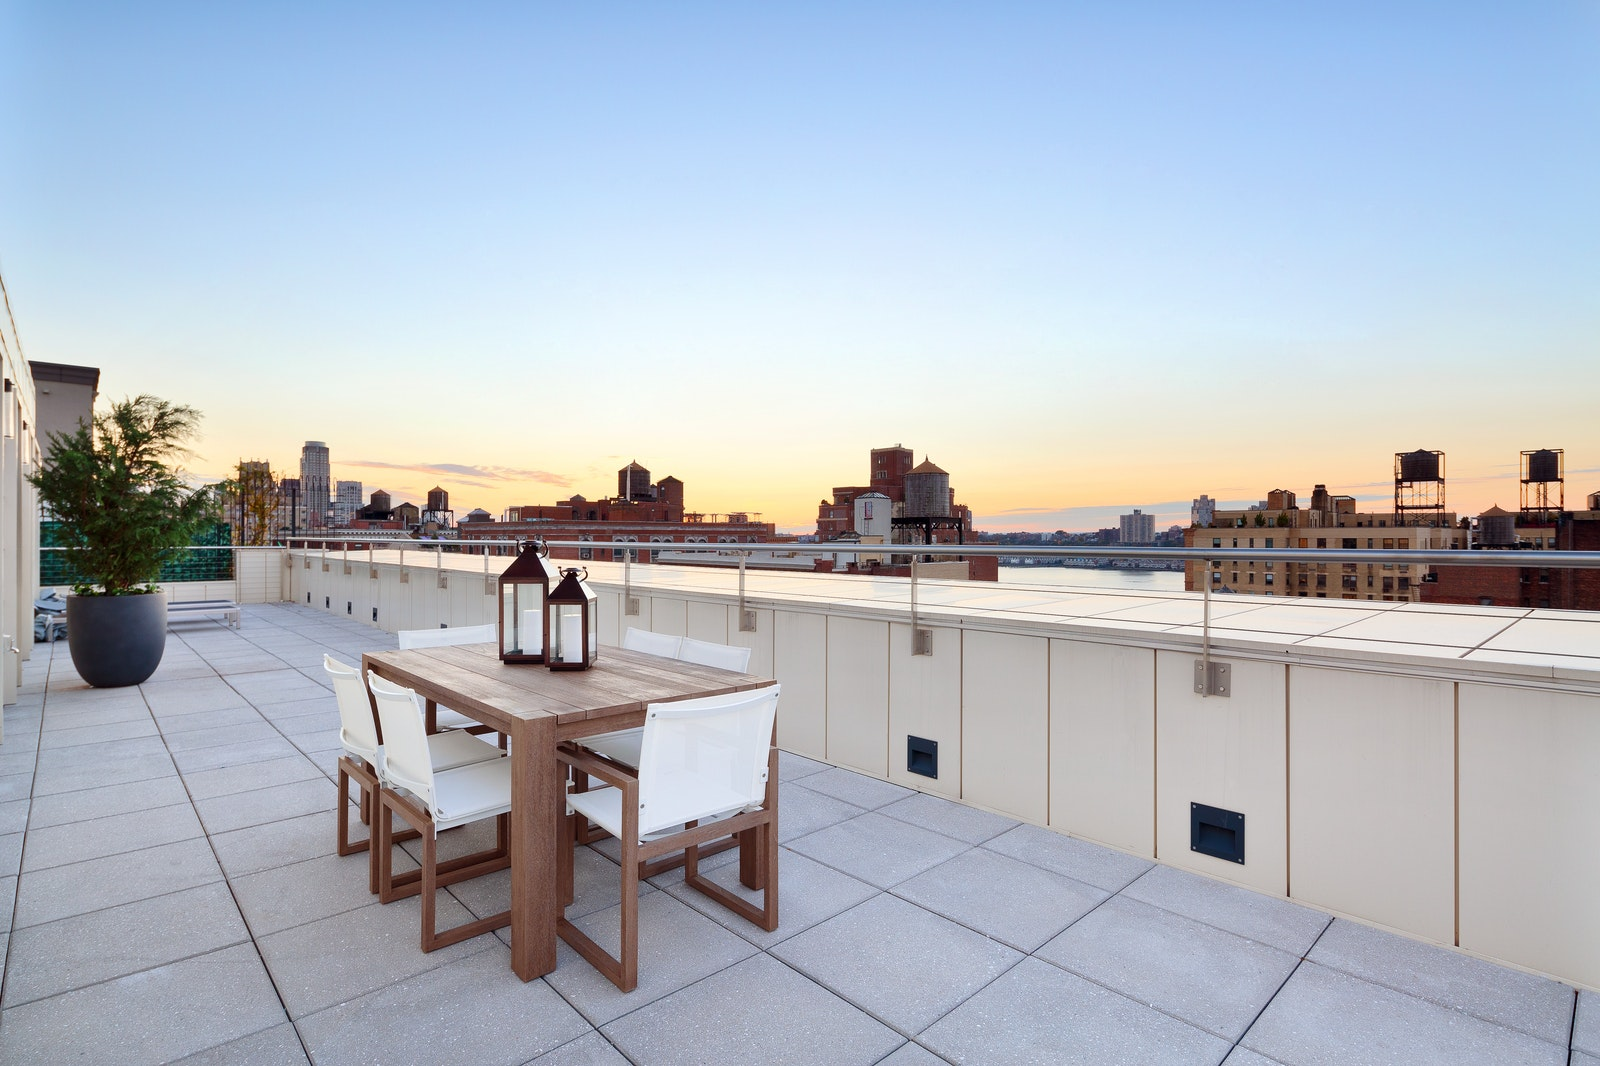 498 West End Avenue Ph, Upper West Side, NYC, 10024, $14,950,000, Property For Sale, Halstead Real Estate, Photo 12